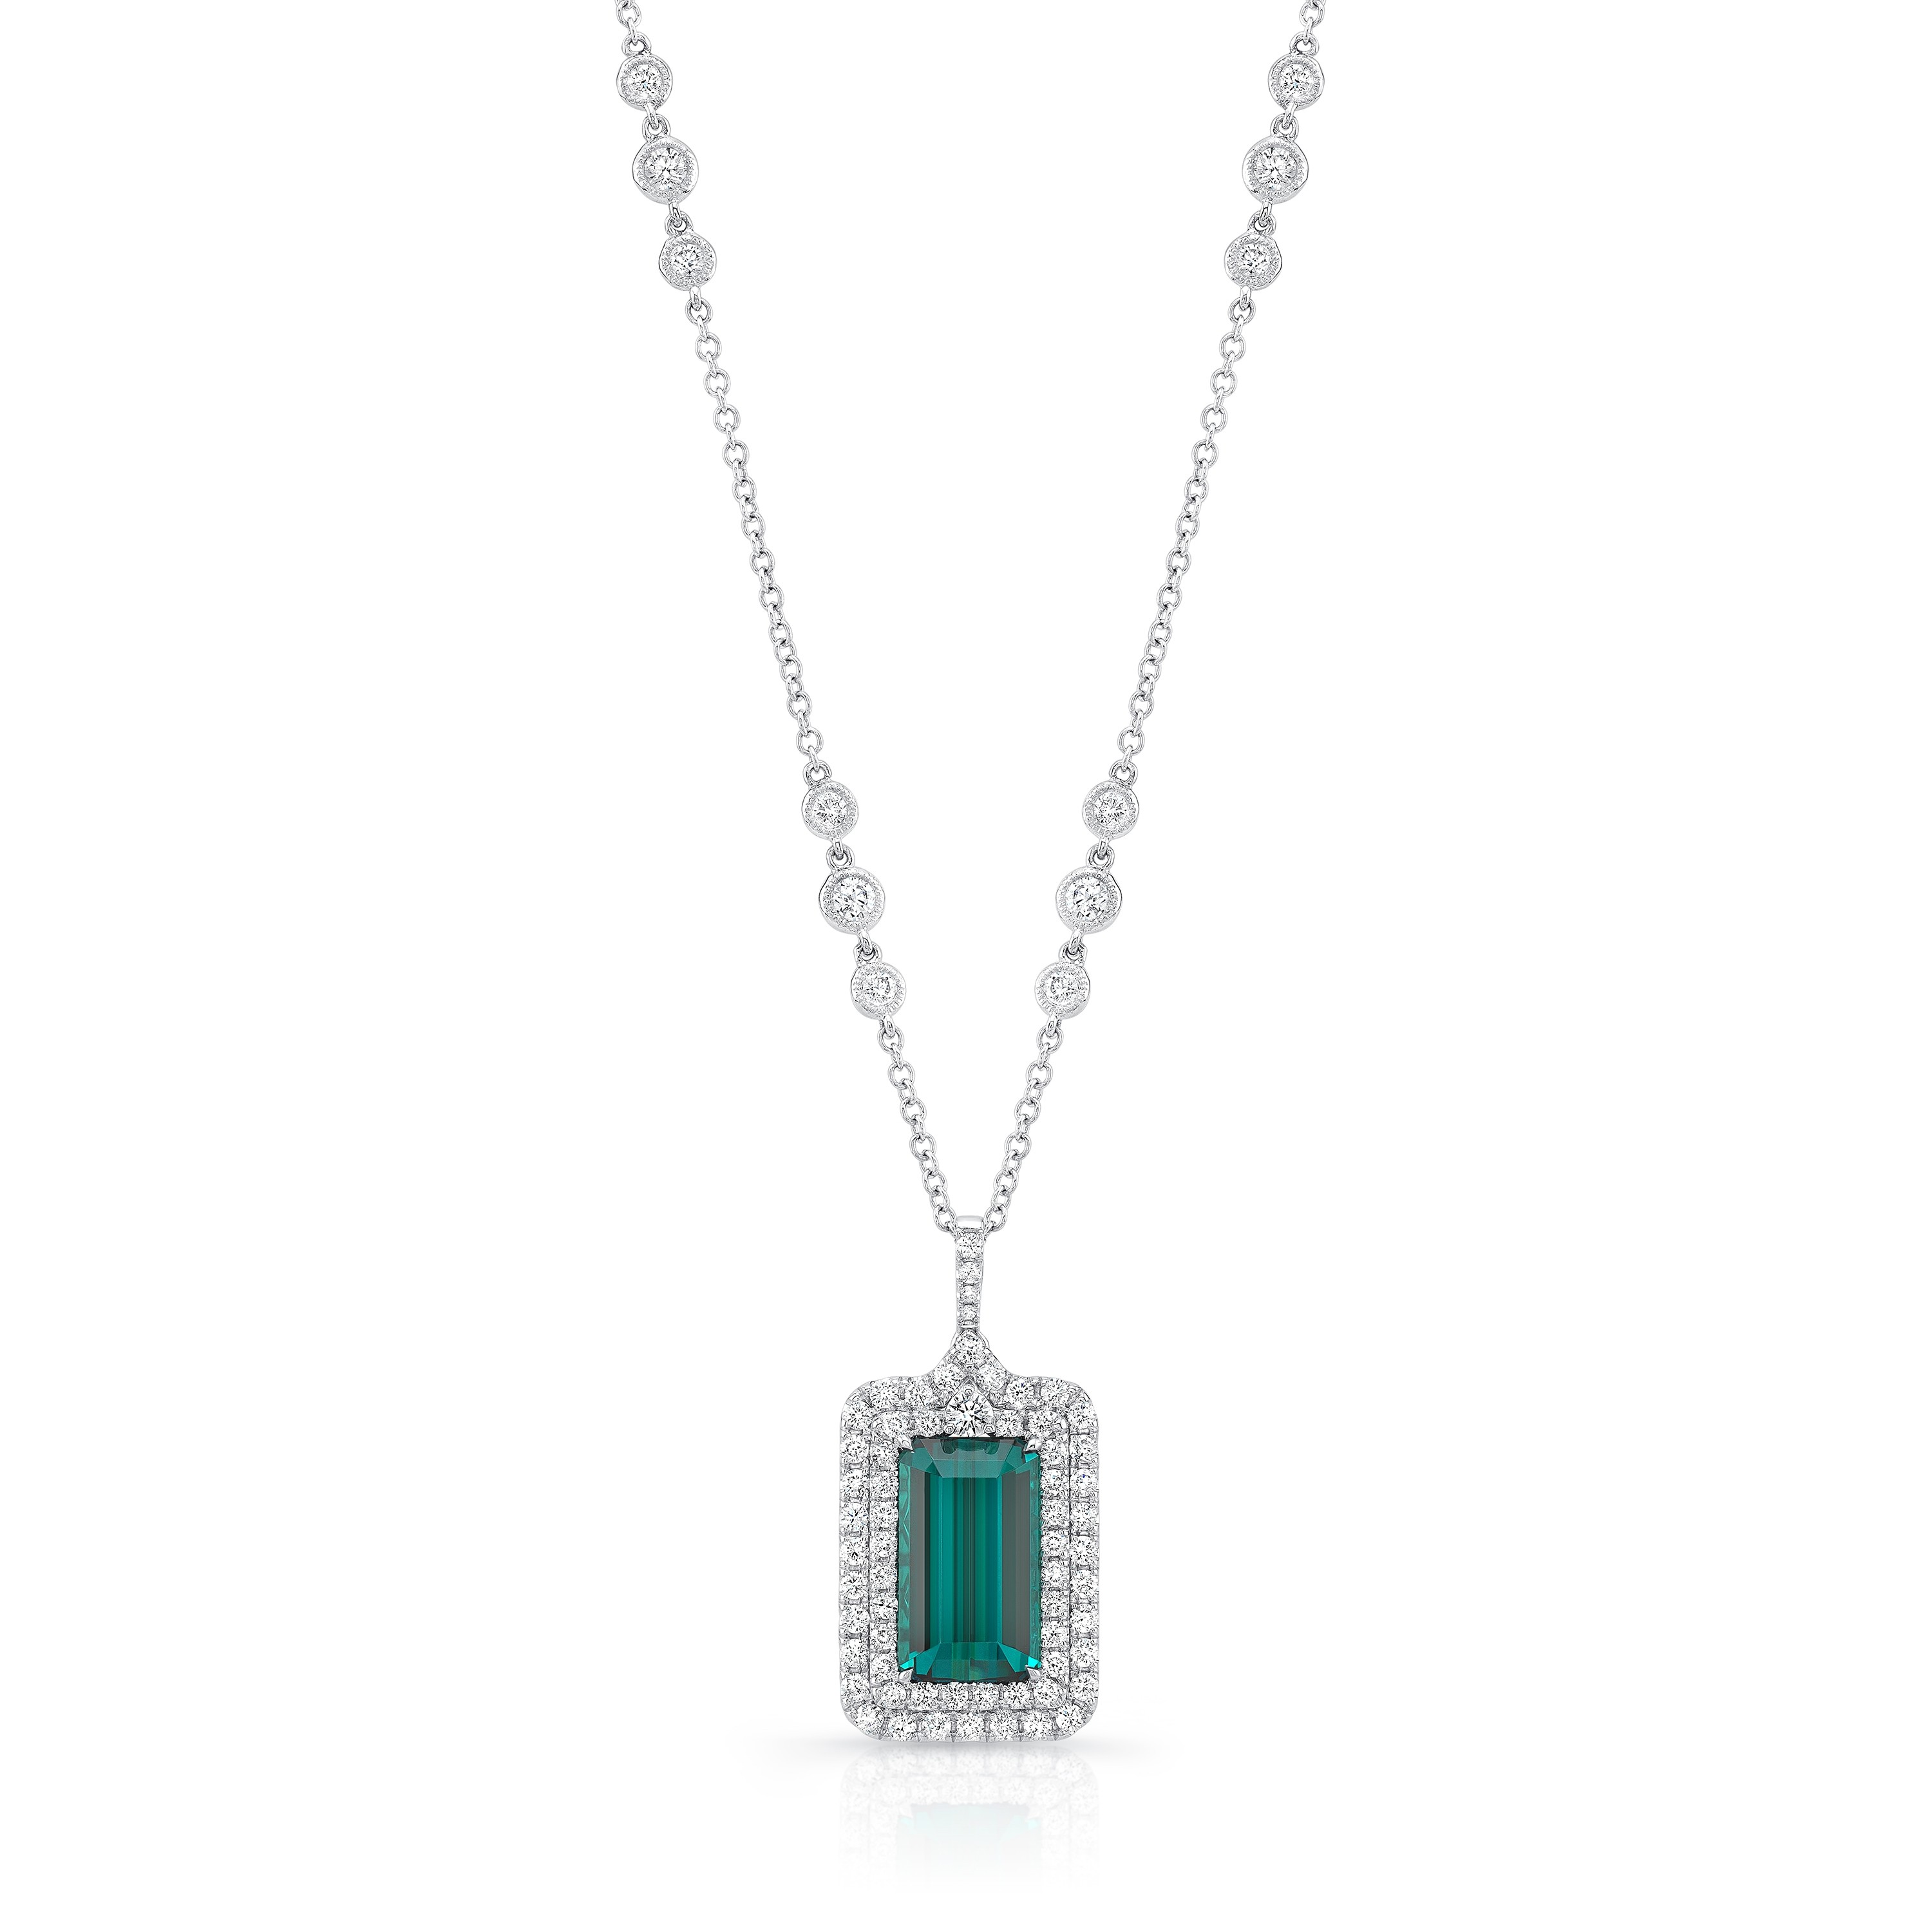 Uneek Emerald Cut Green Tourmaline Diamond Pendant, in 18K White Gold - LVN939GT